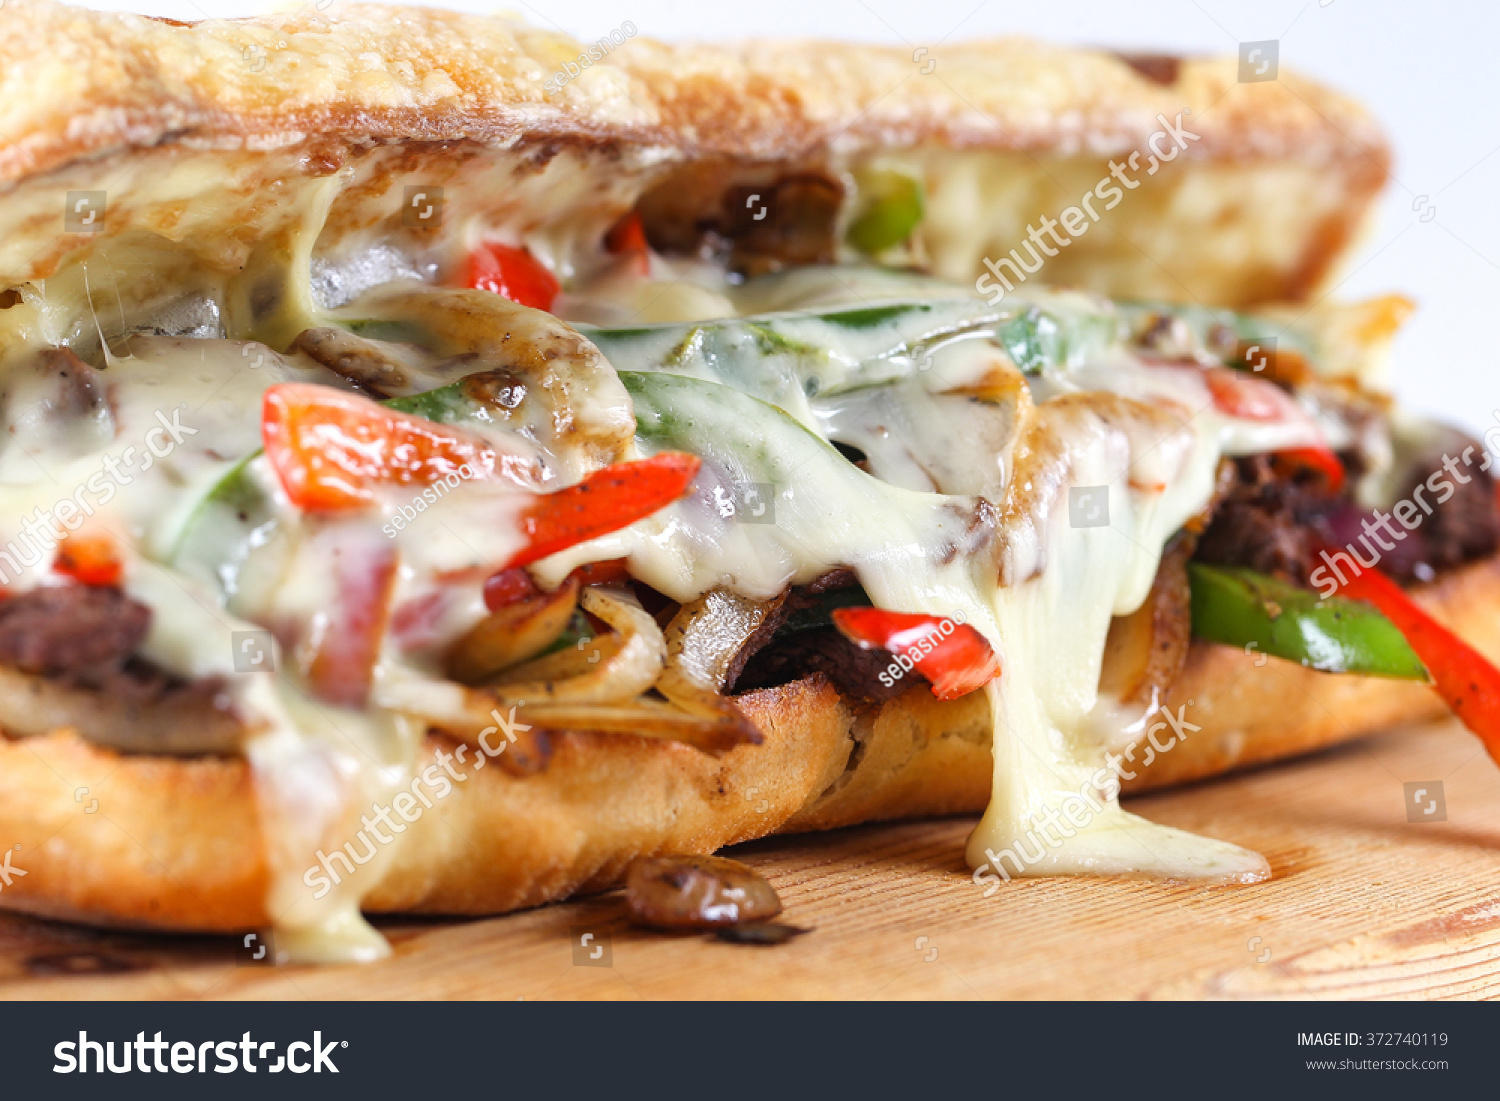 Tasty Beef Steak Sandwich Onions Mushroom Stock Photo ...